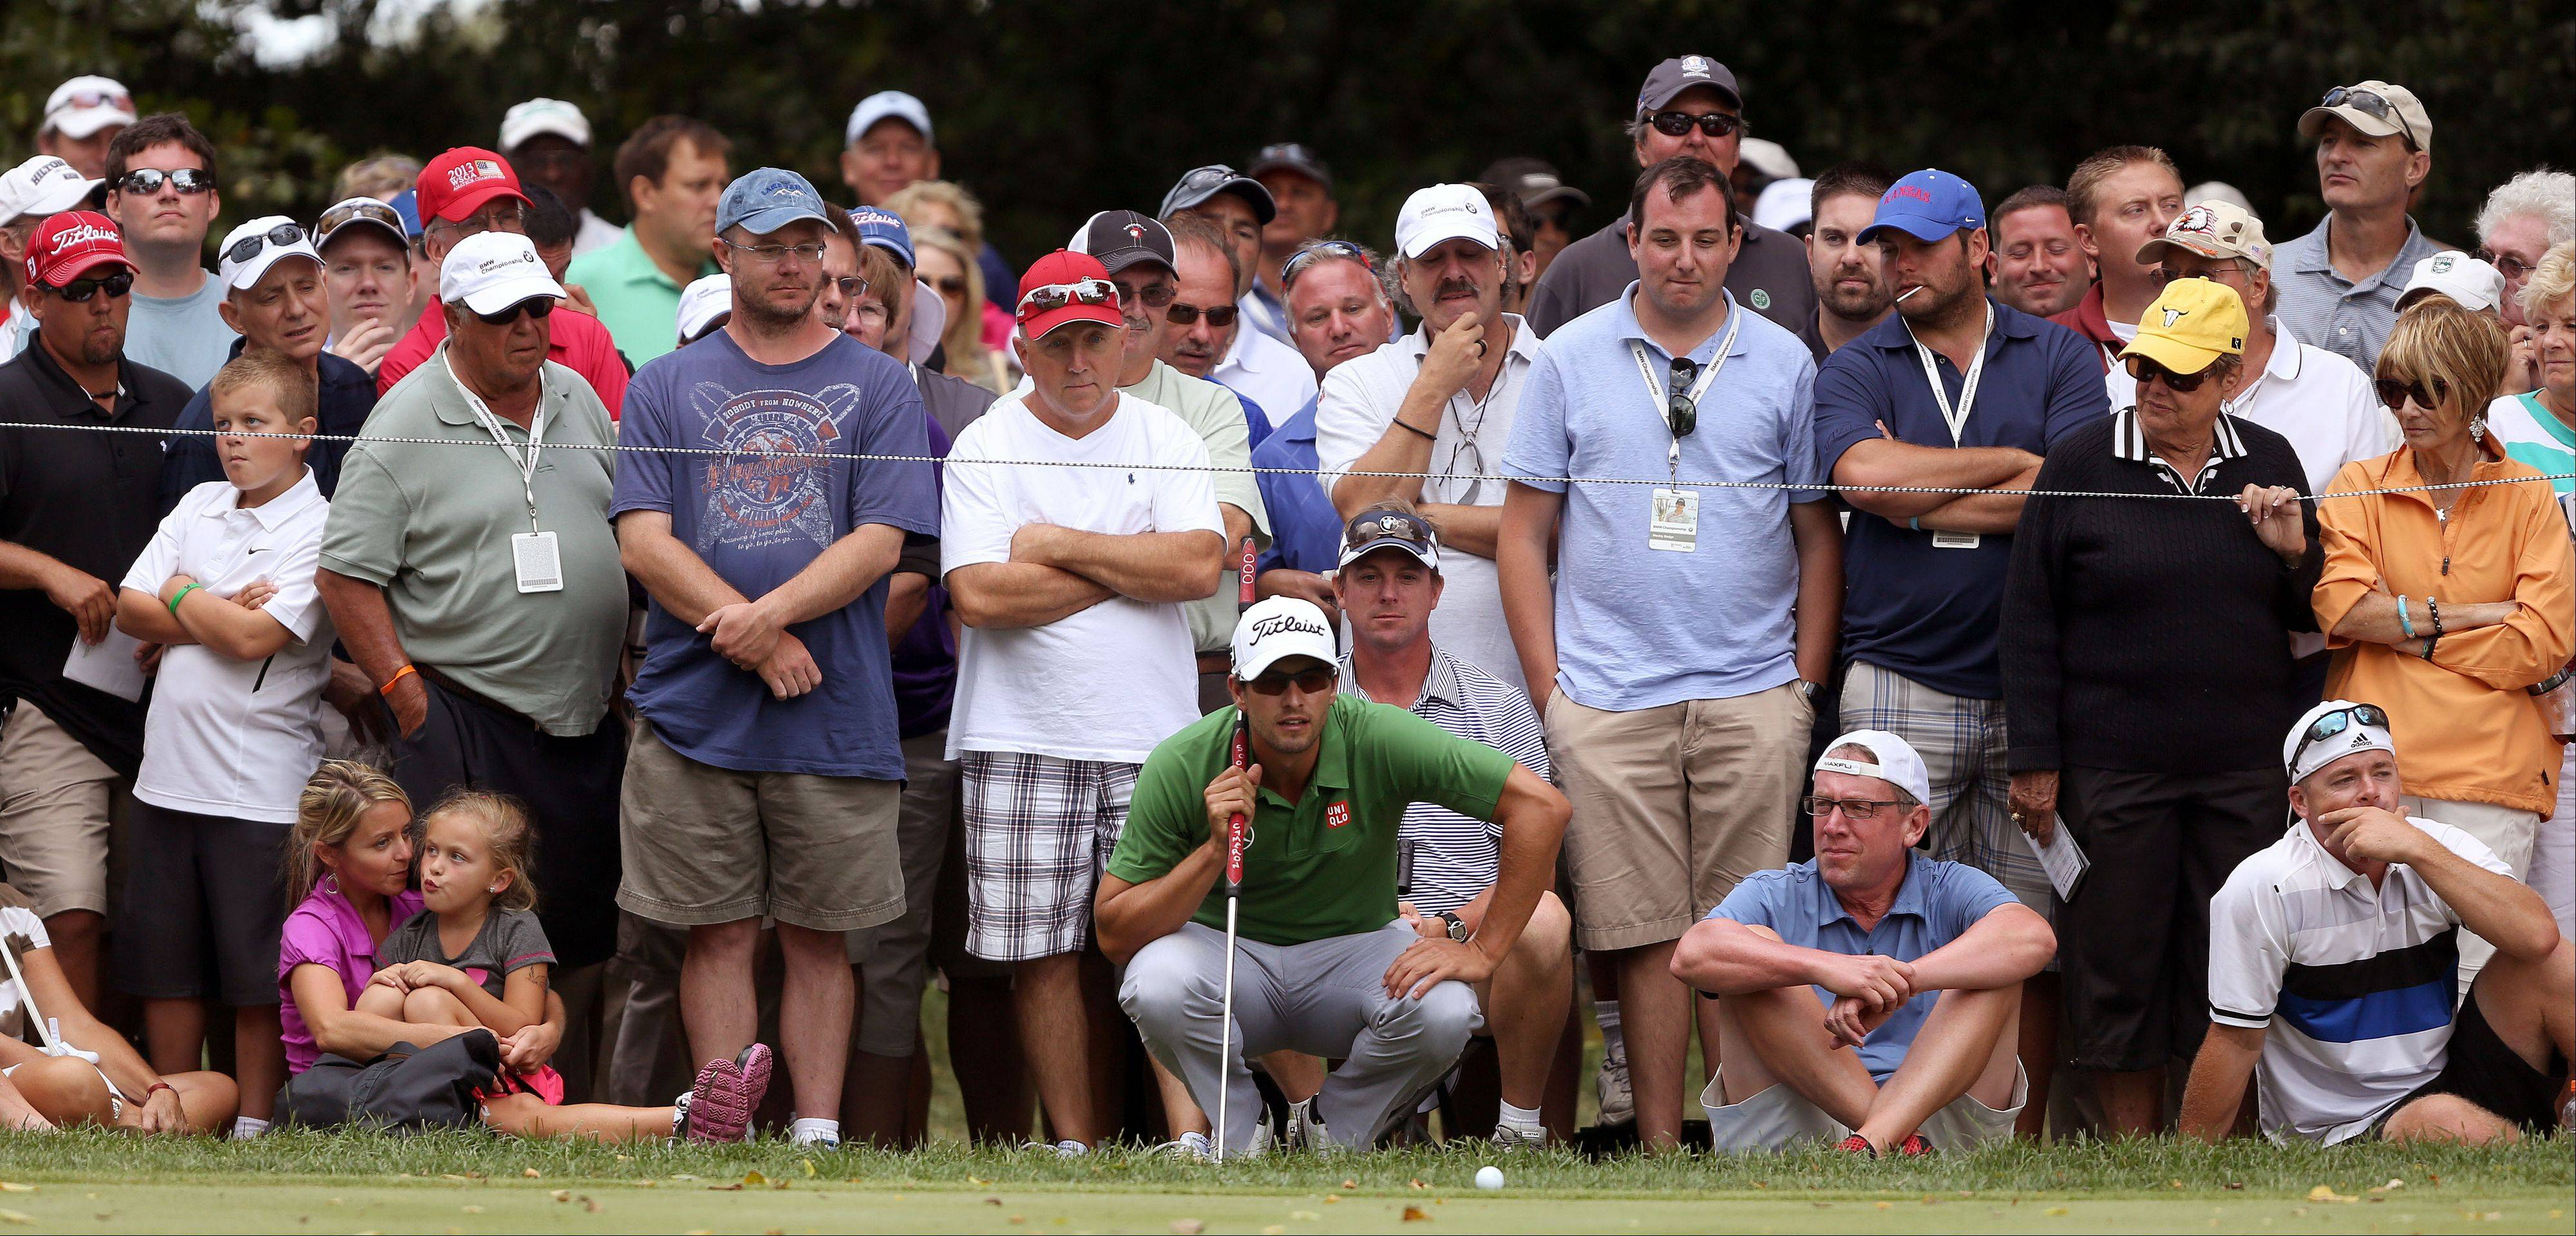 Adam Scott lines up a putt on the 9th hole as the crowd watches during the first-round of the BMW Championship at Conway Farms Golf Club in Lake Forest Thursday.